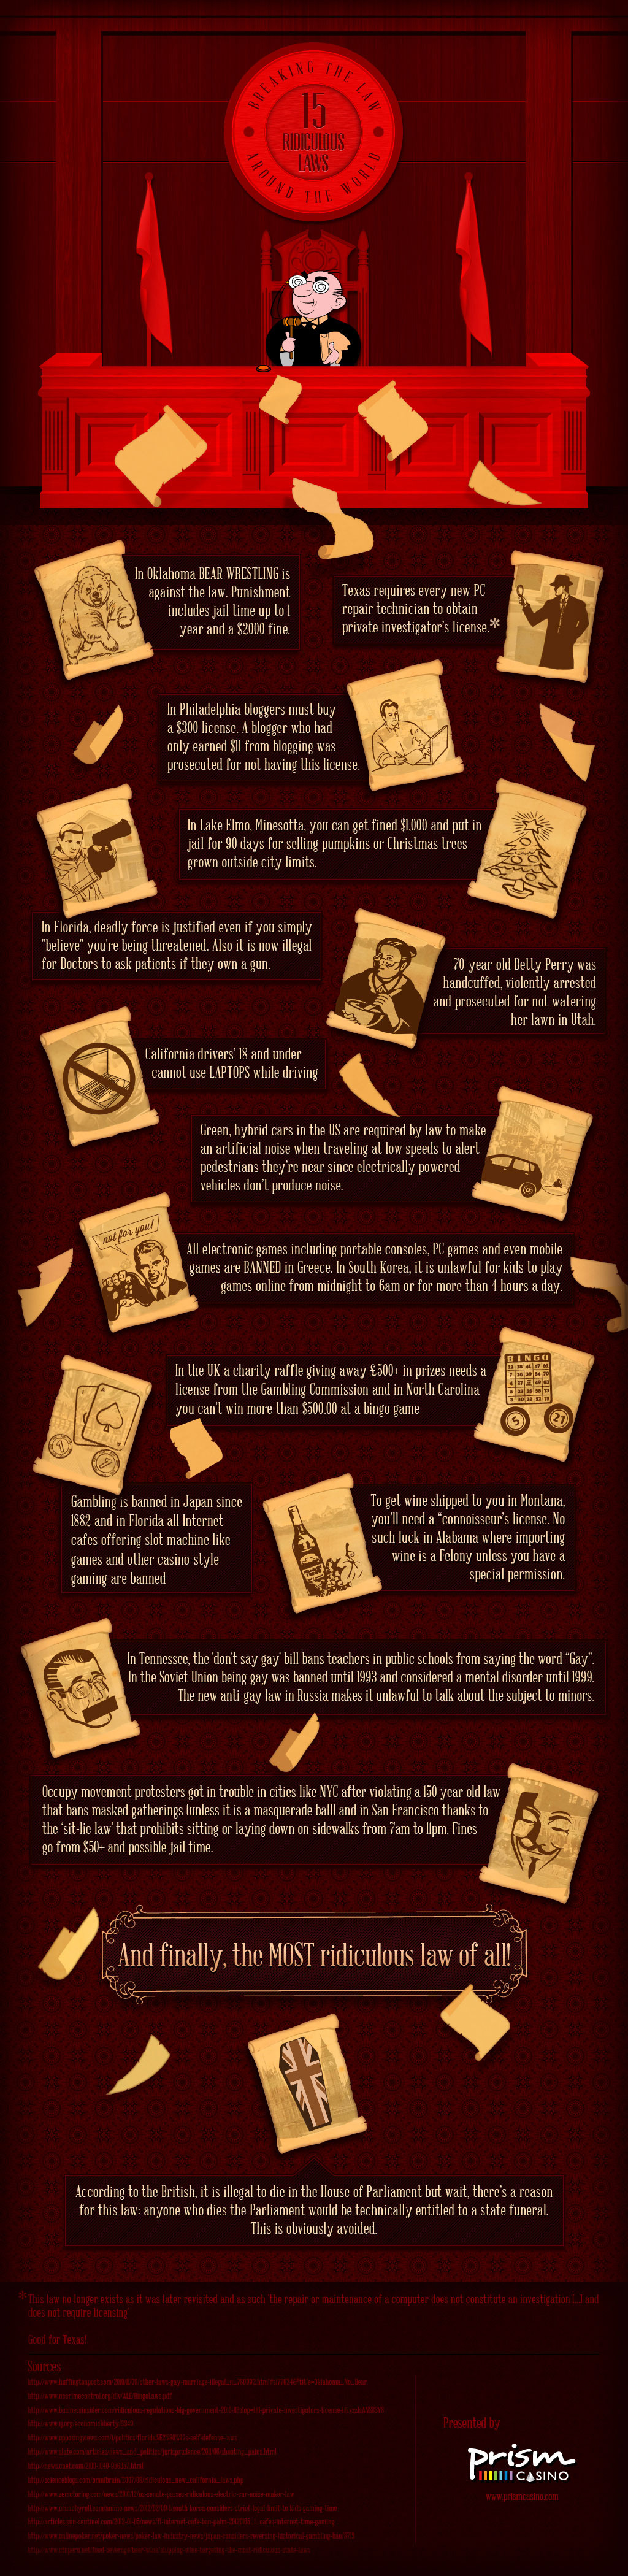 Stupid and Unbelievable Laws in the World legislation,spouse,strange,amazing,parliament,infographic